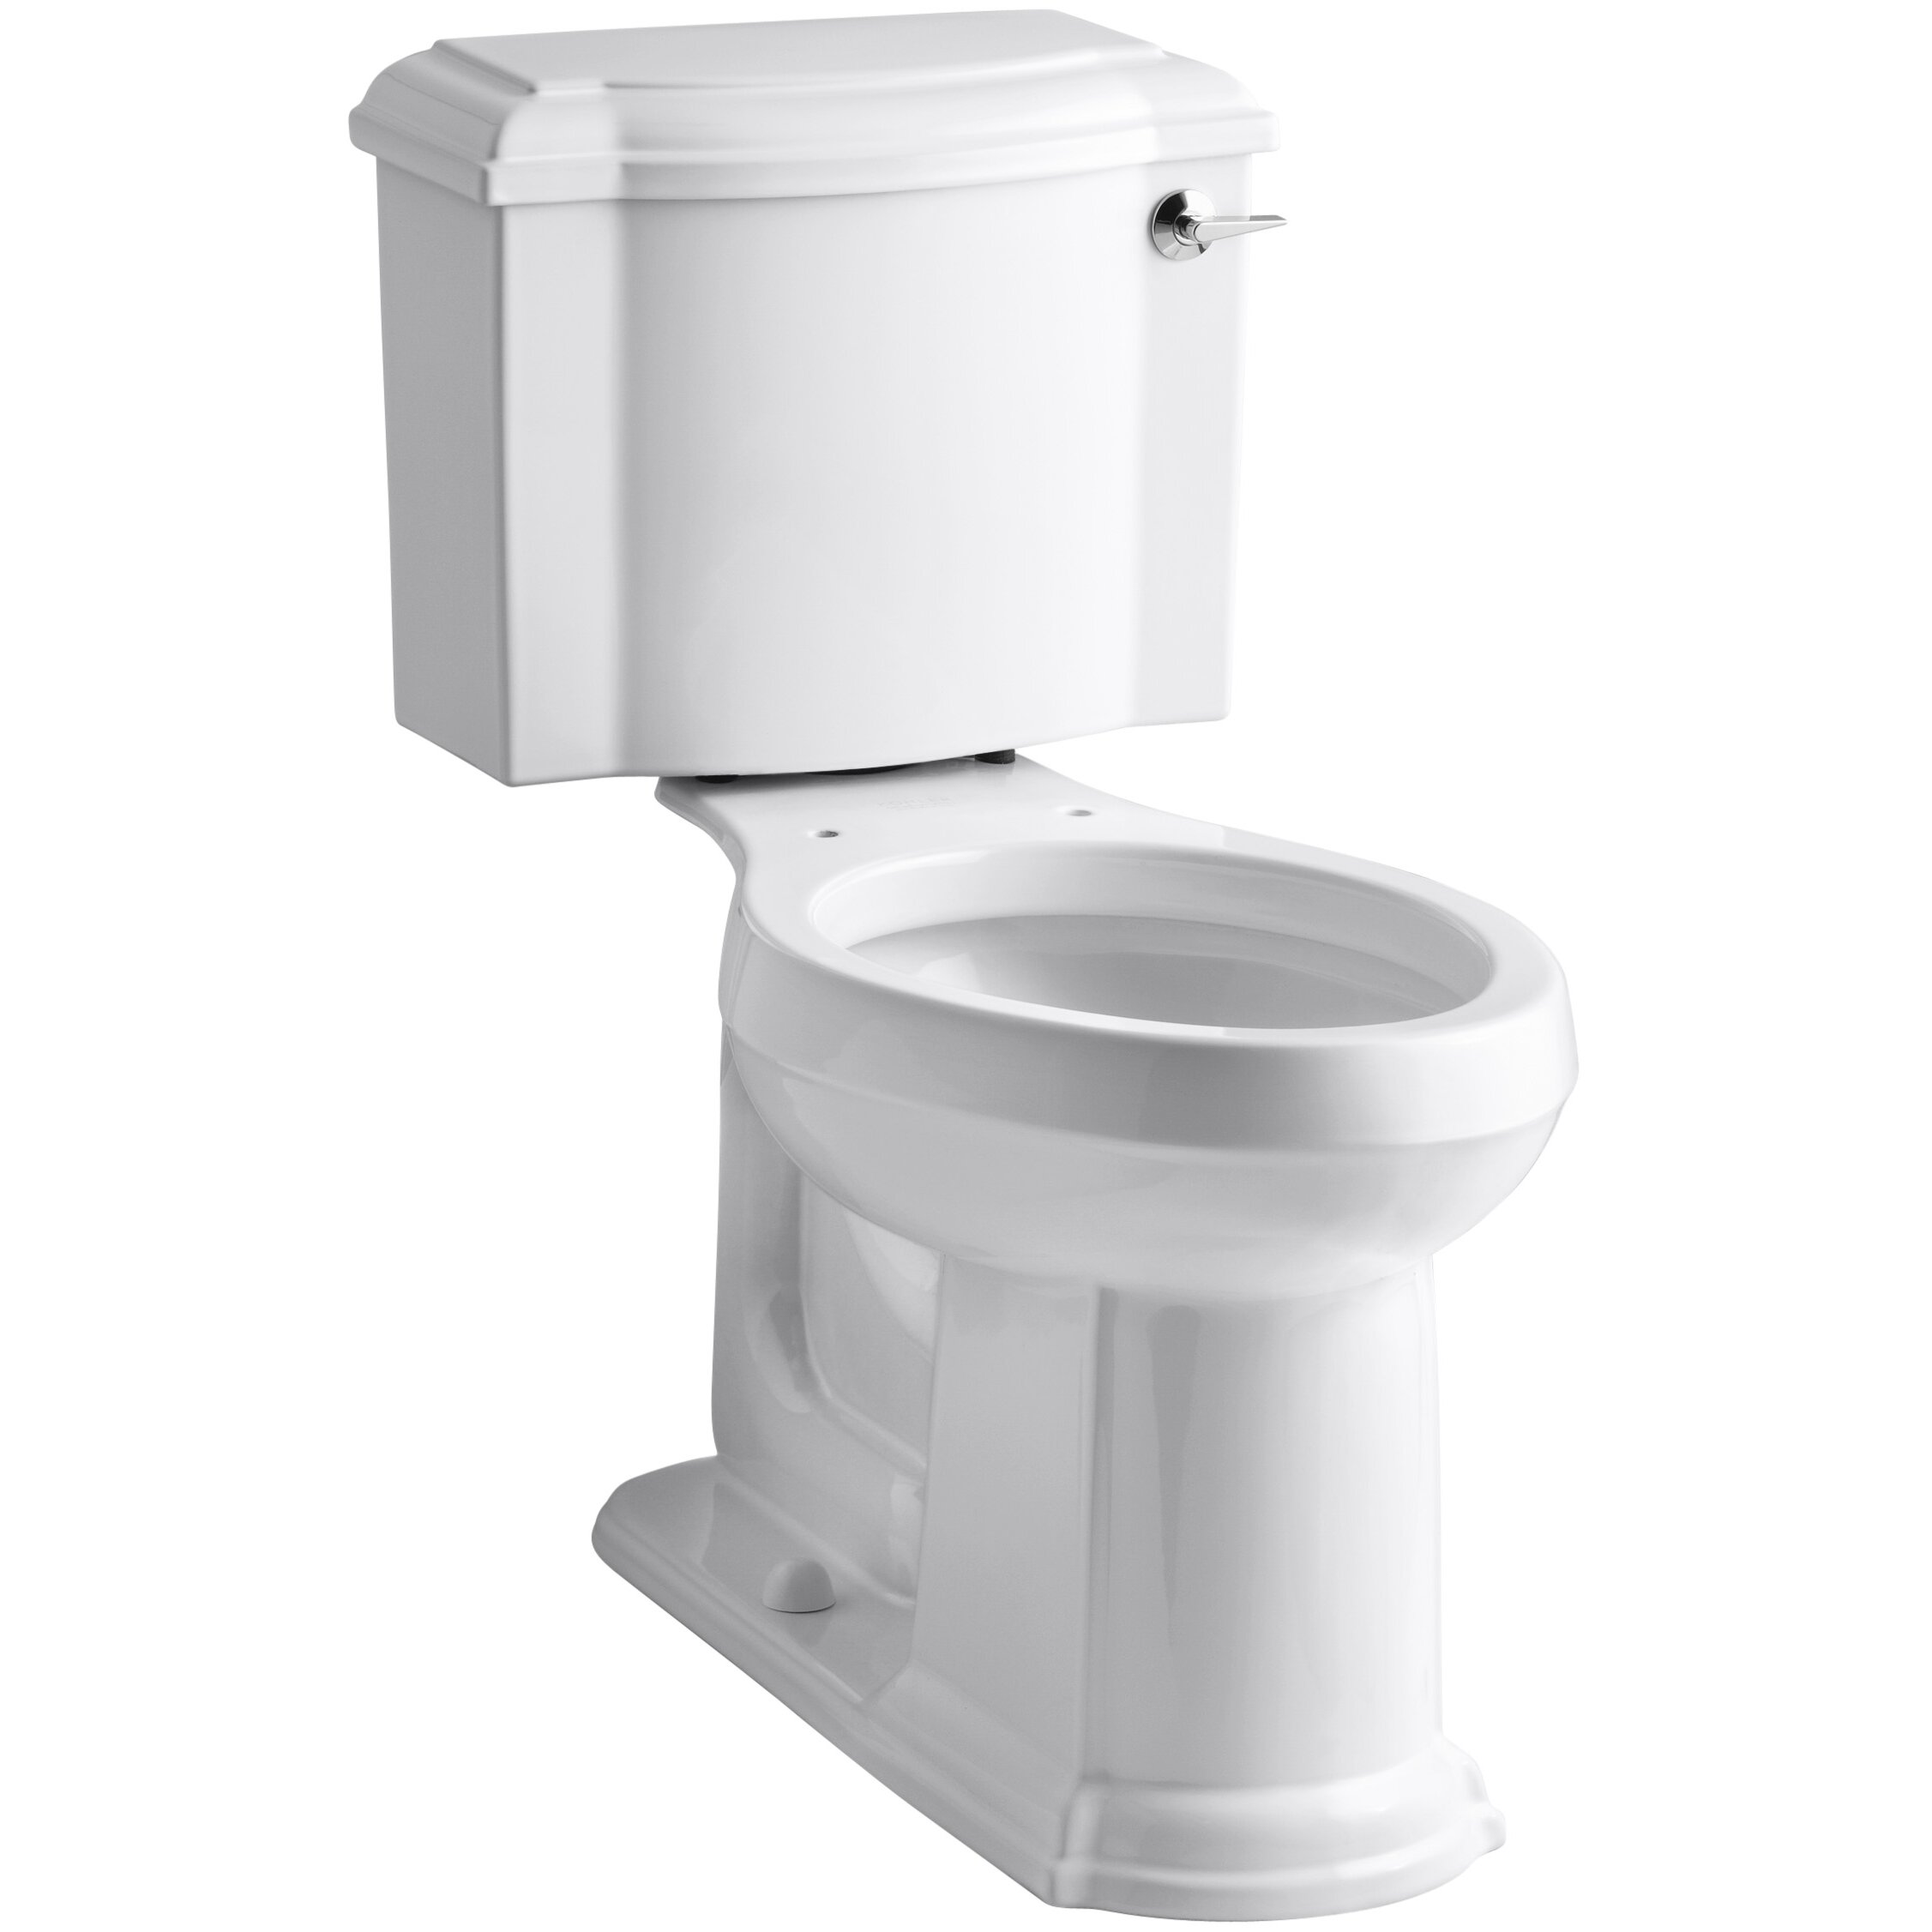 Kohler devonshire comfort height two piece elongated gpf toilet with aquapiston flush - Kohler devonshire reviews ...